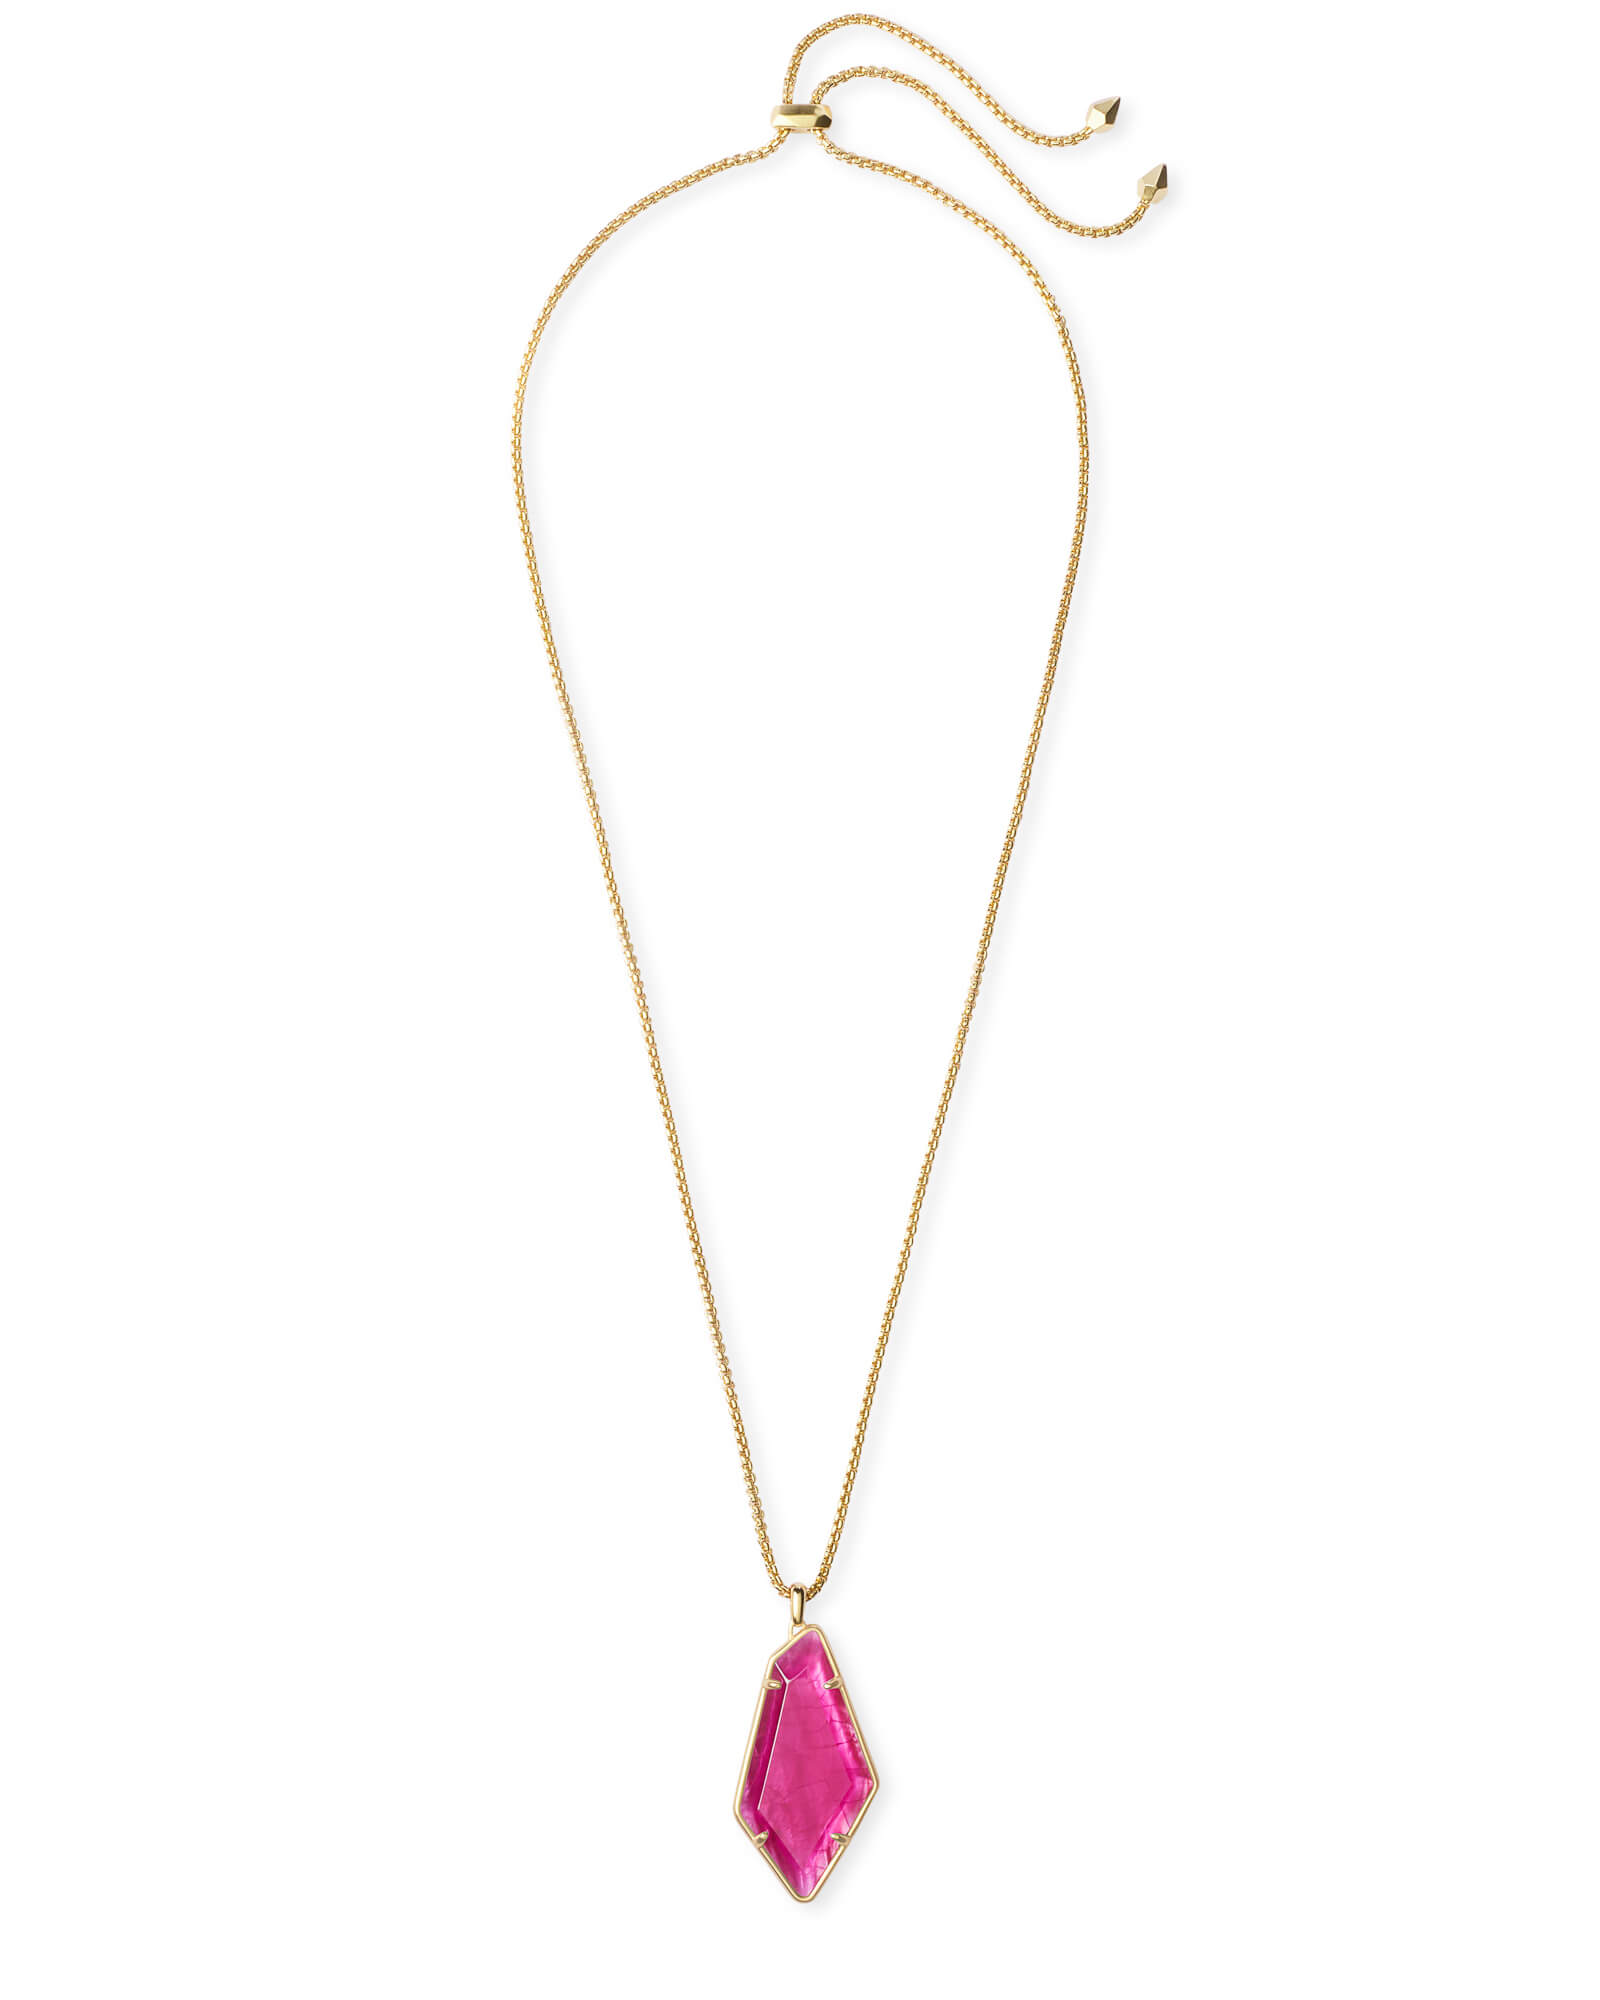 Lilith Gold Long Pendant Necklace in Azalea Illusion